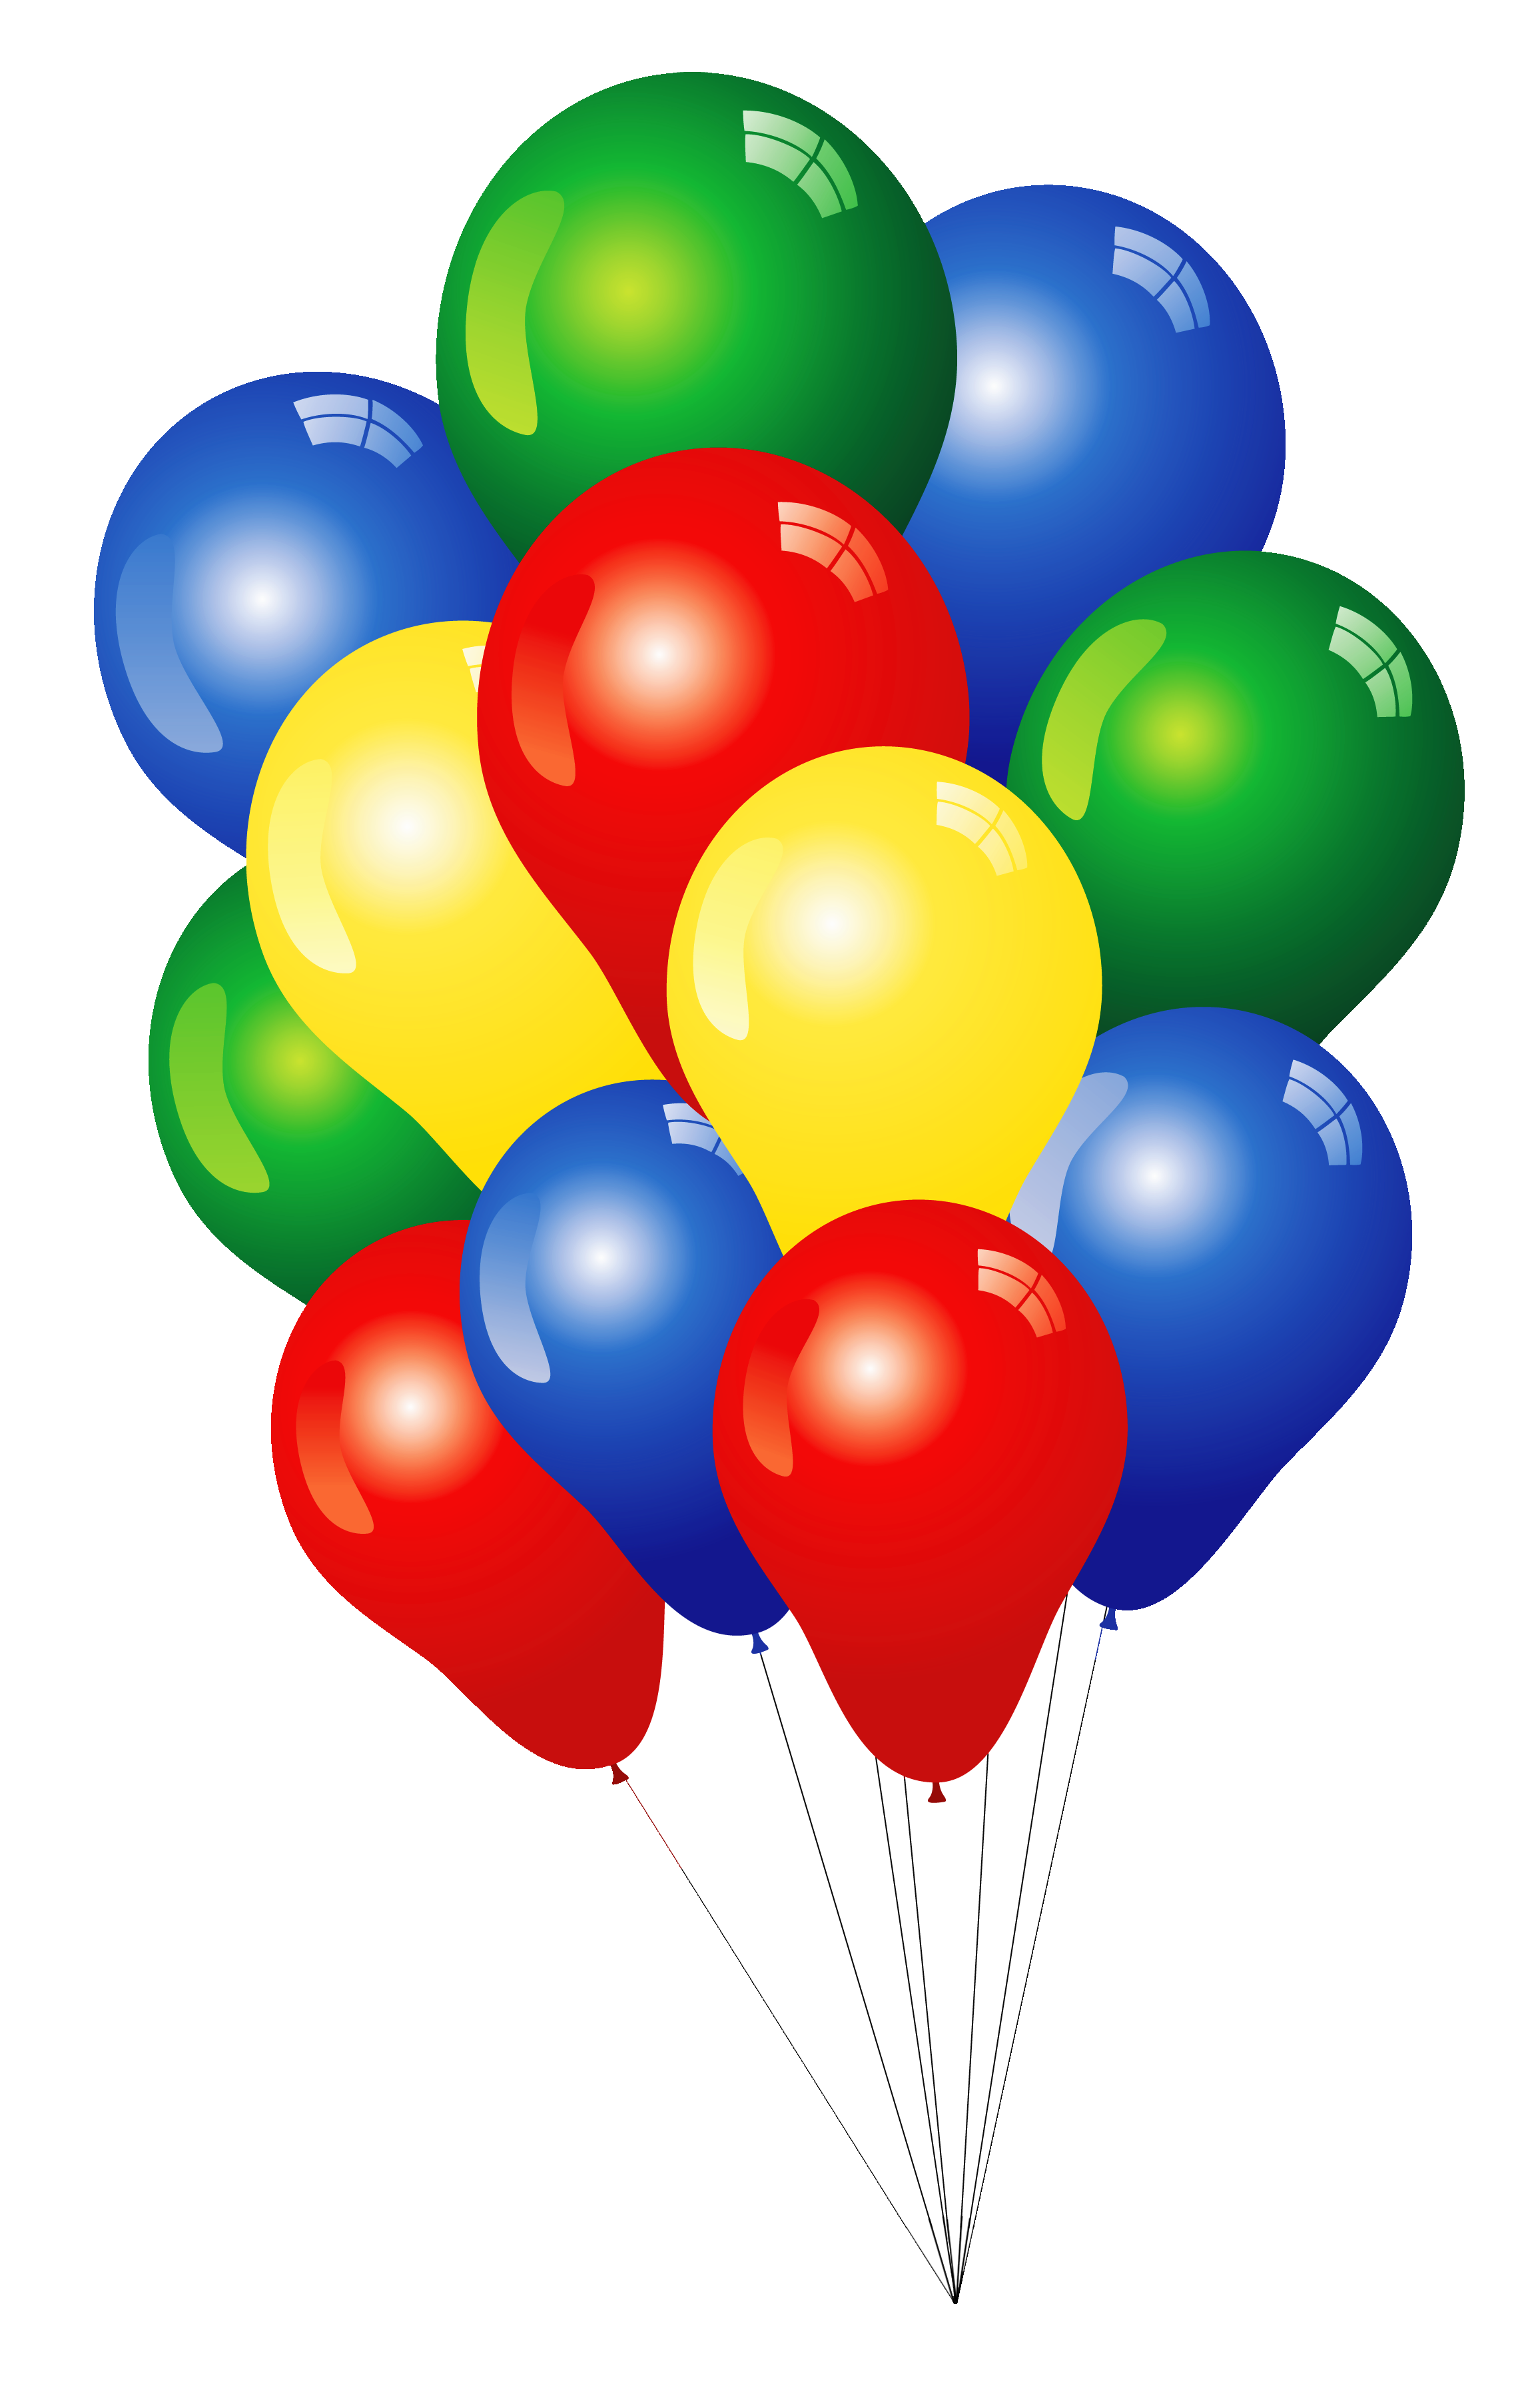 Clip art balloons clipart image 2